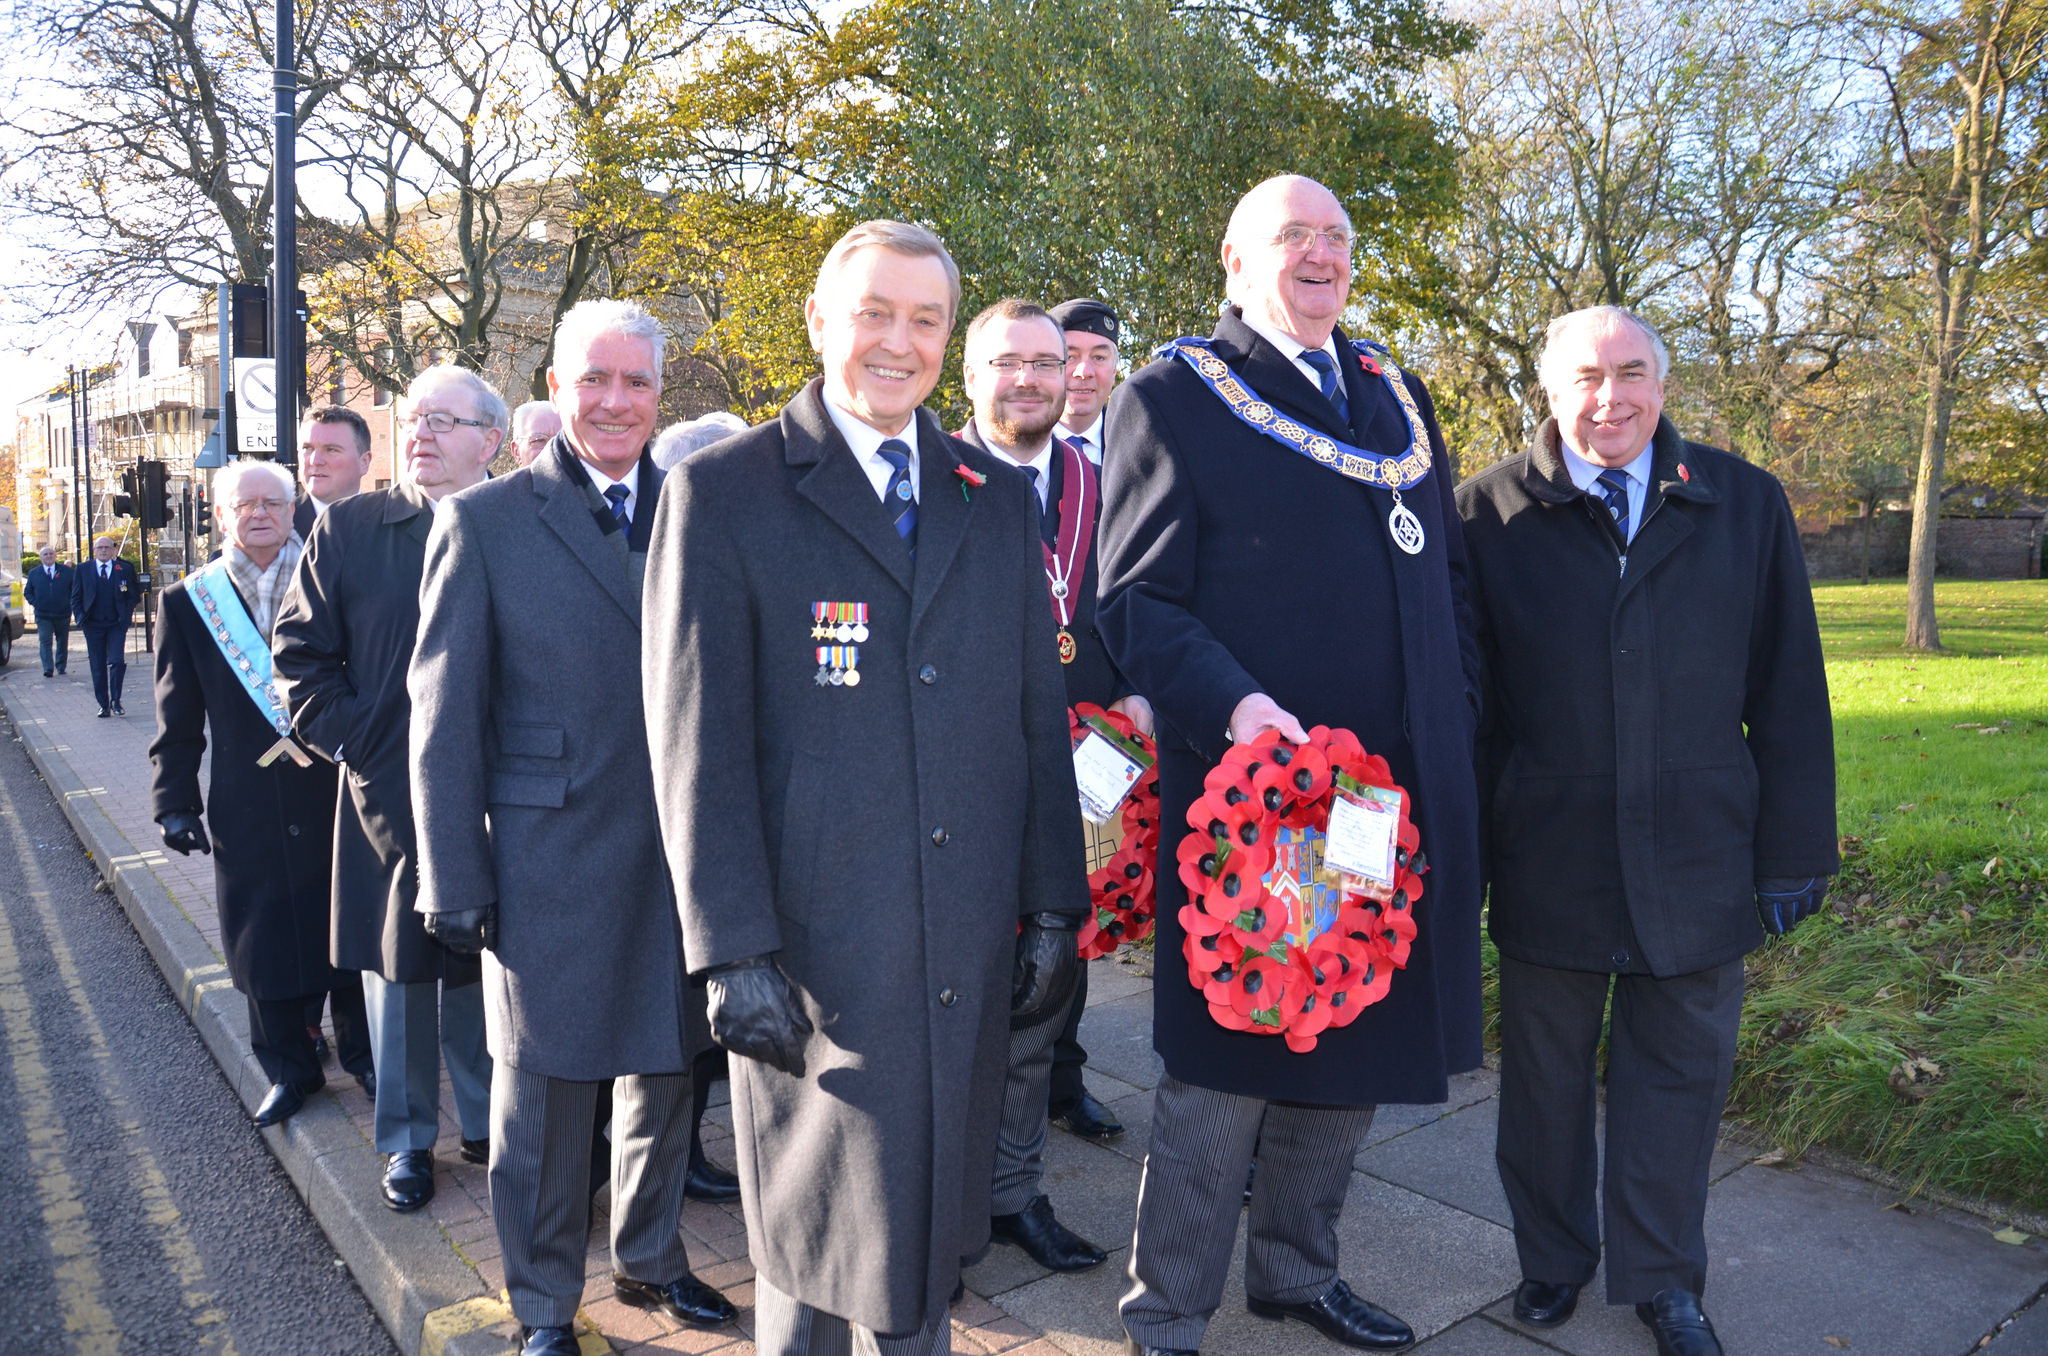 Wearside Masonic Temple supporting Remembrance Sunday 2017